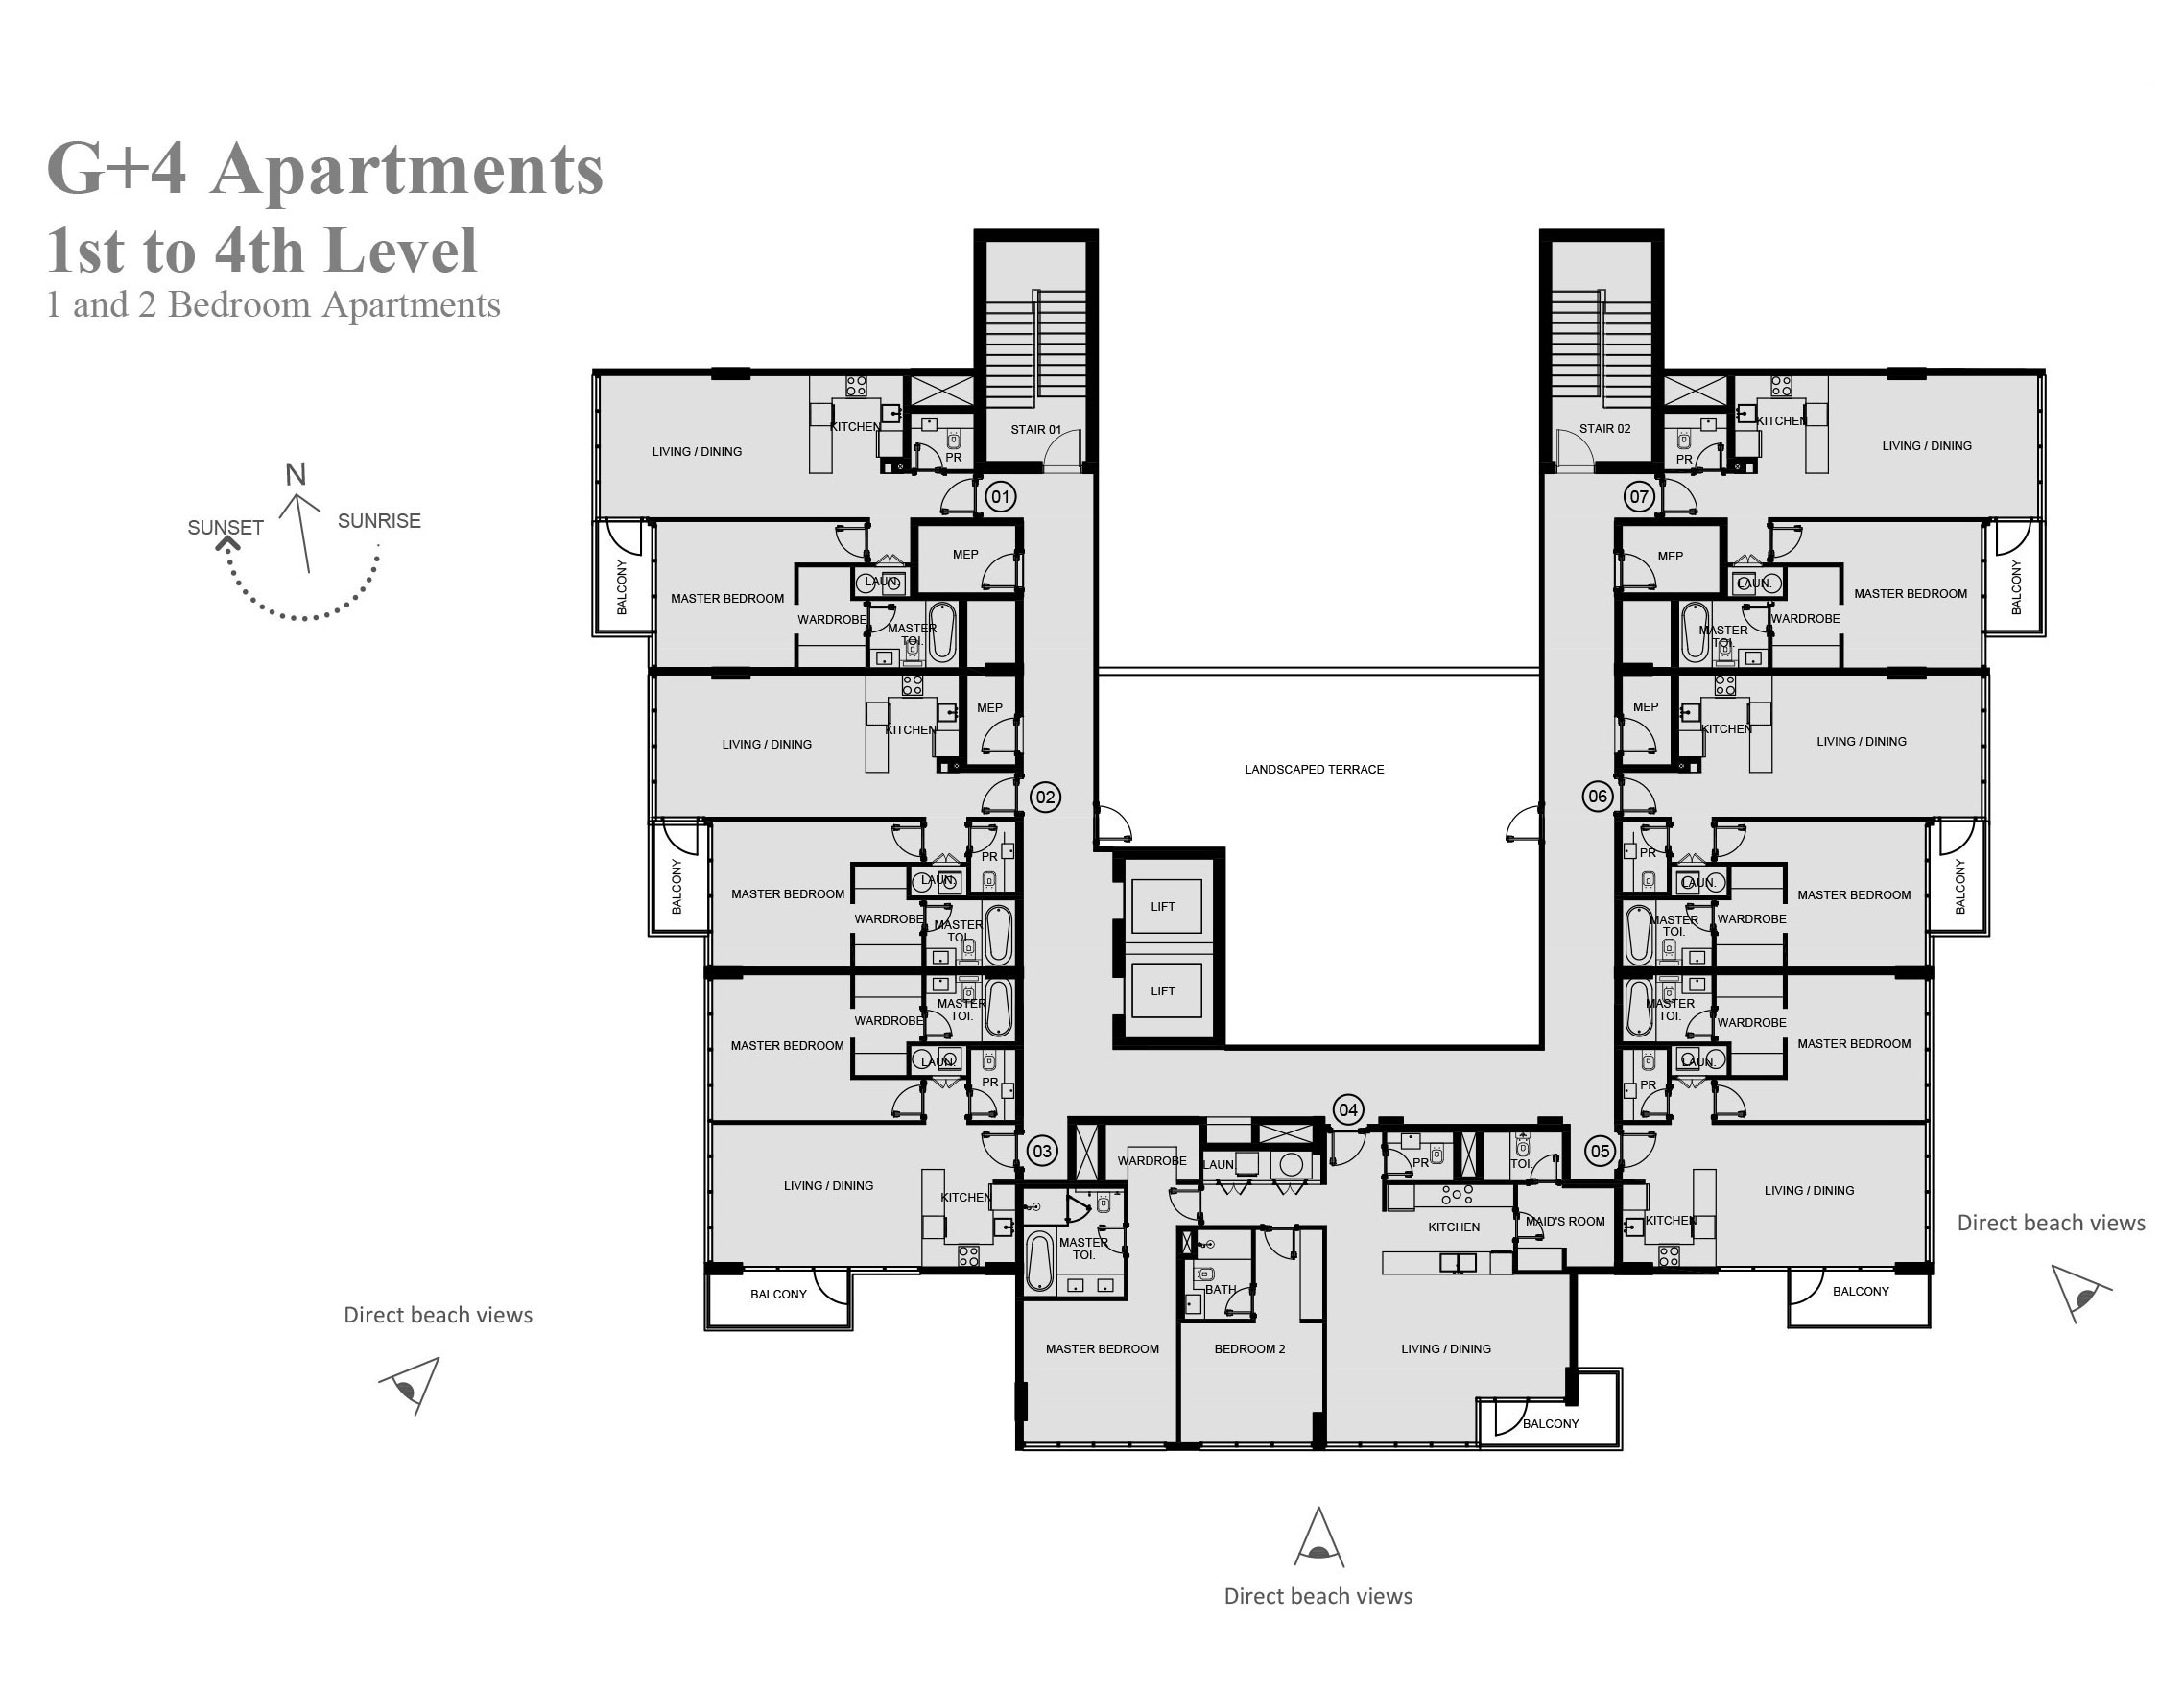 G+4 Apartments 1st - 4th Level - 1 and 2 Bedroom Apartments